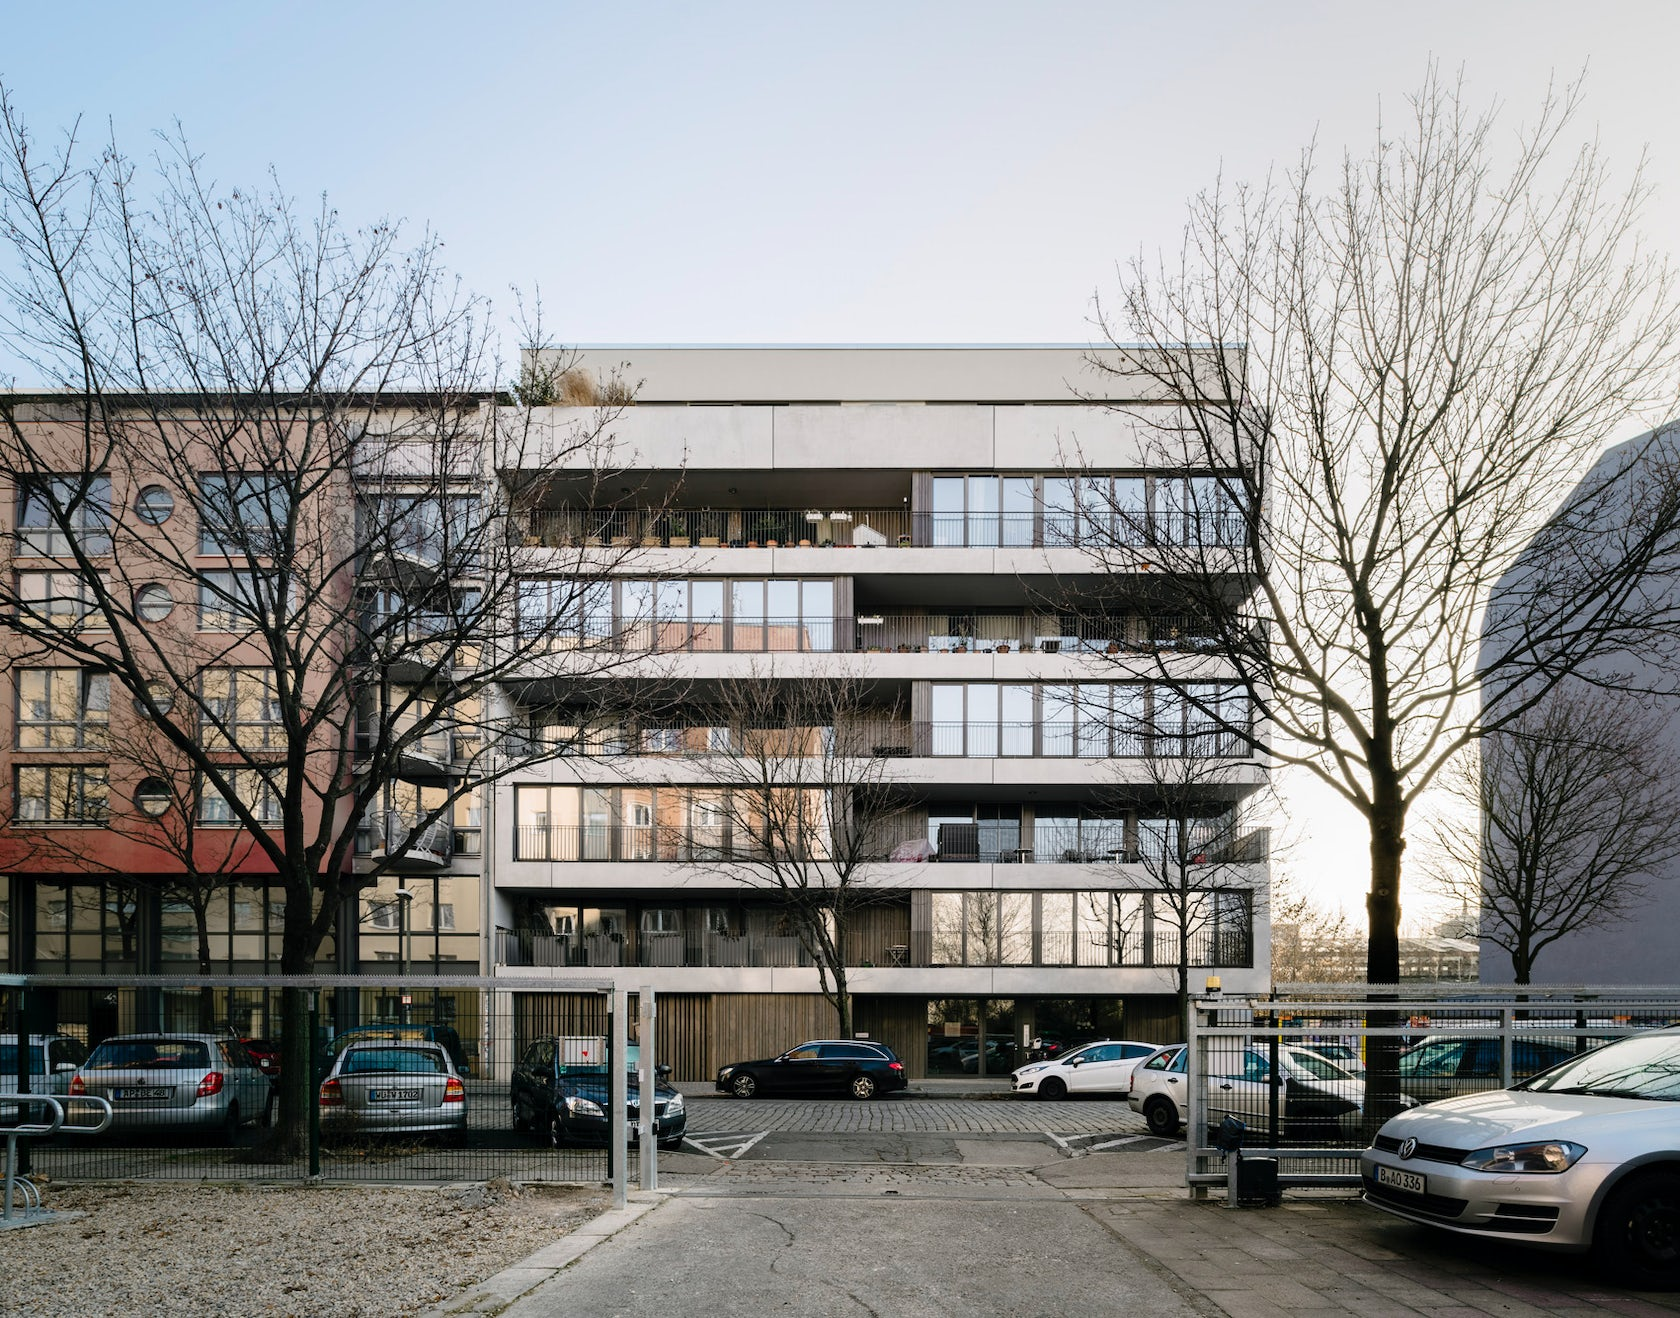 ad41 - Development of a new residential building Adalbertstrasse 41, Berlin-Mitte  on Architizer